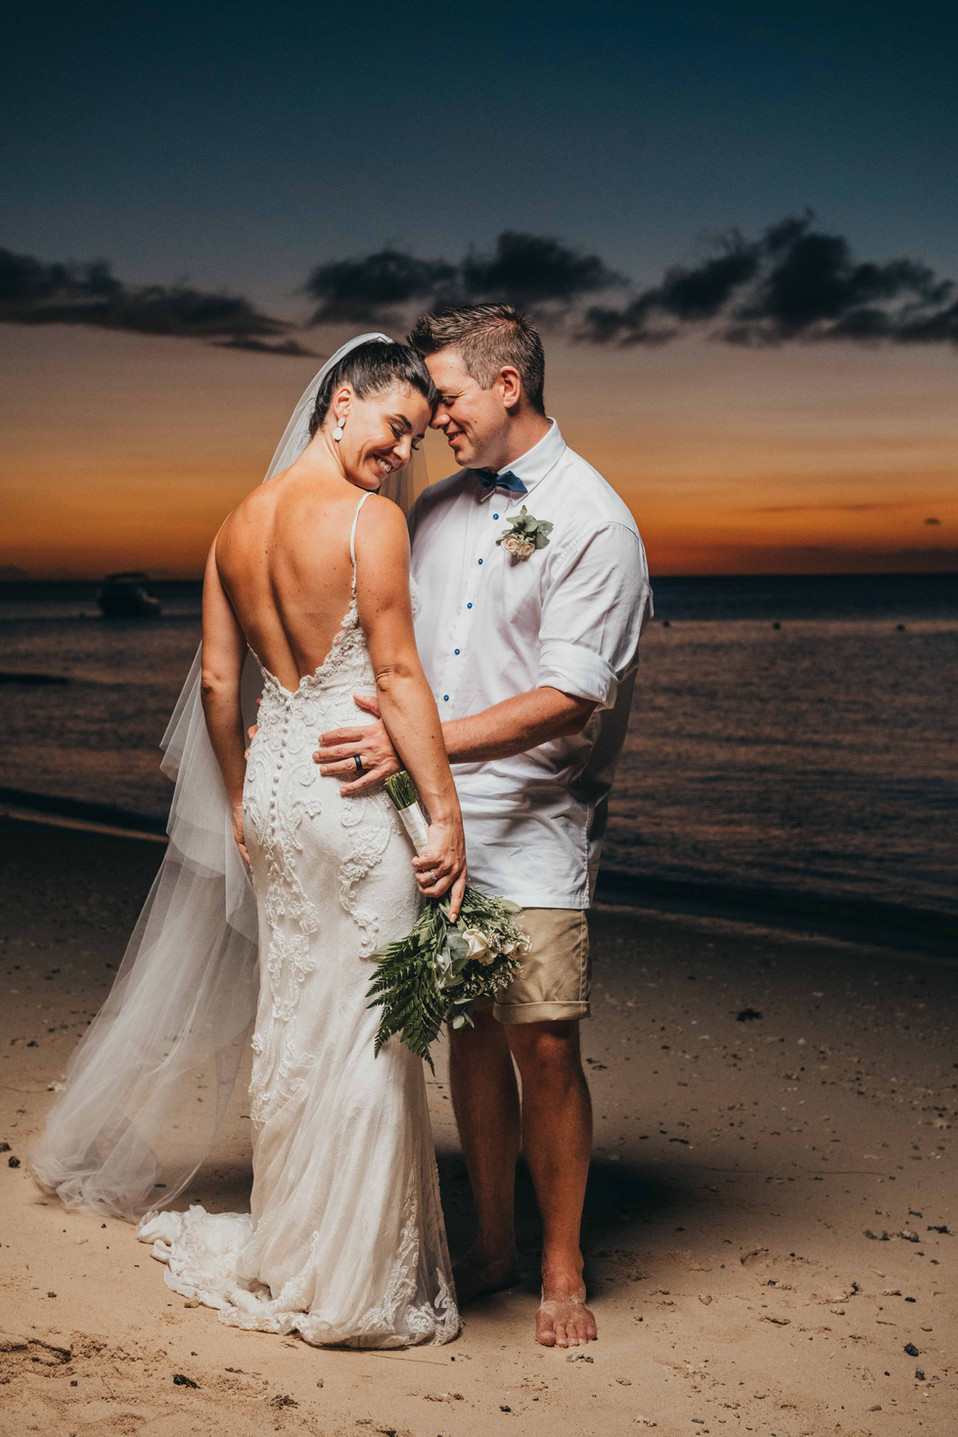 Laura and Charles - Wedding in Mauritius